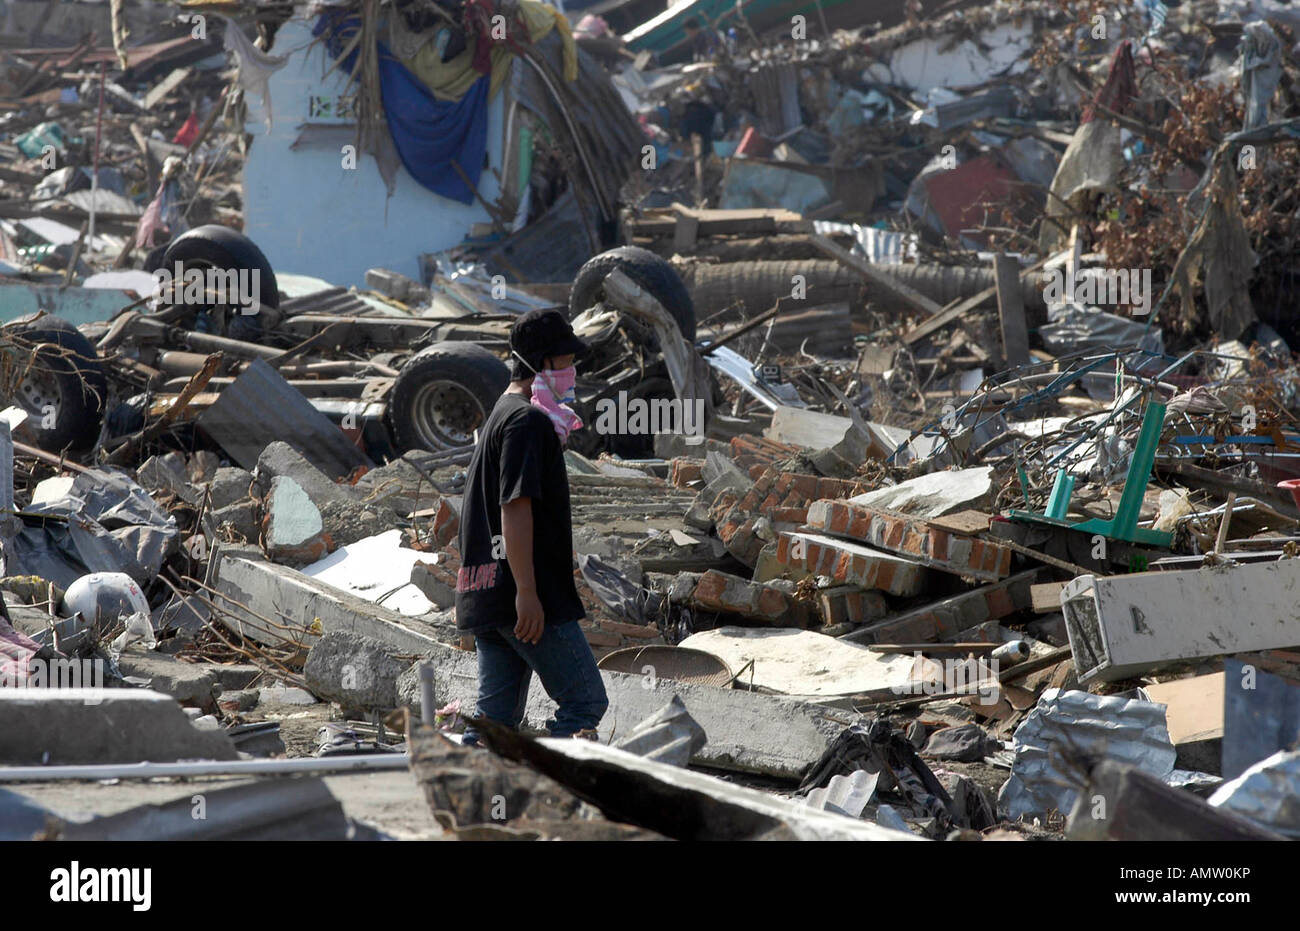 A man walks through the rubble in Banda Aceh Indonesia Stock Photo